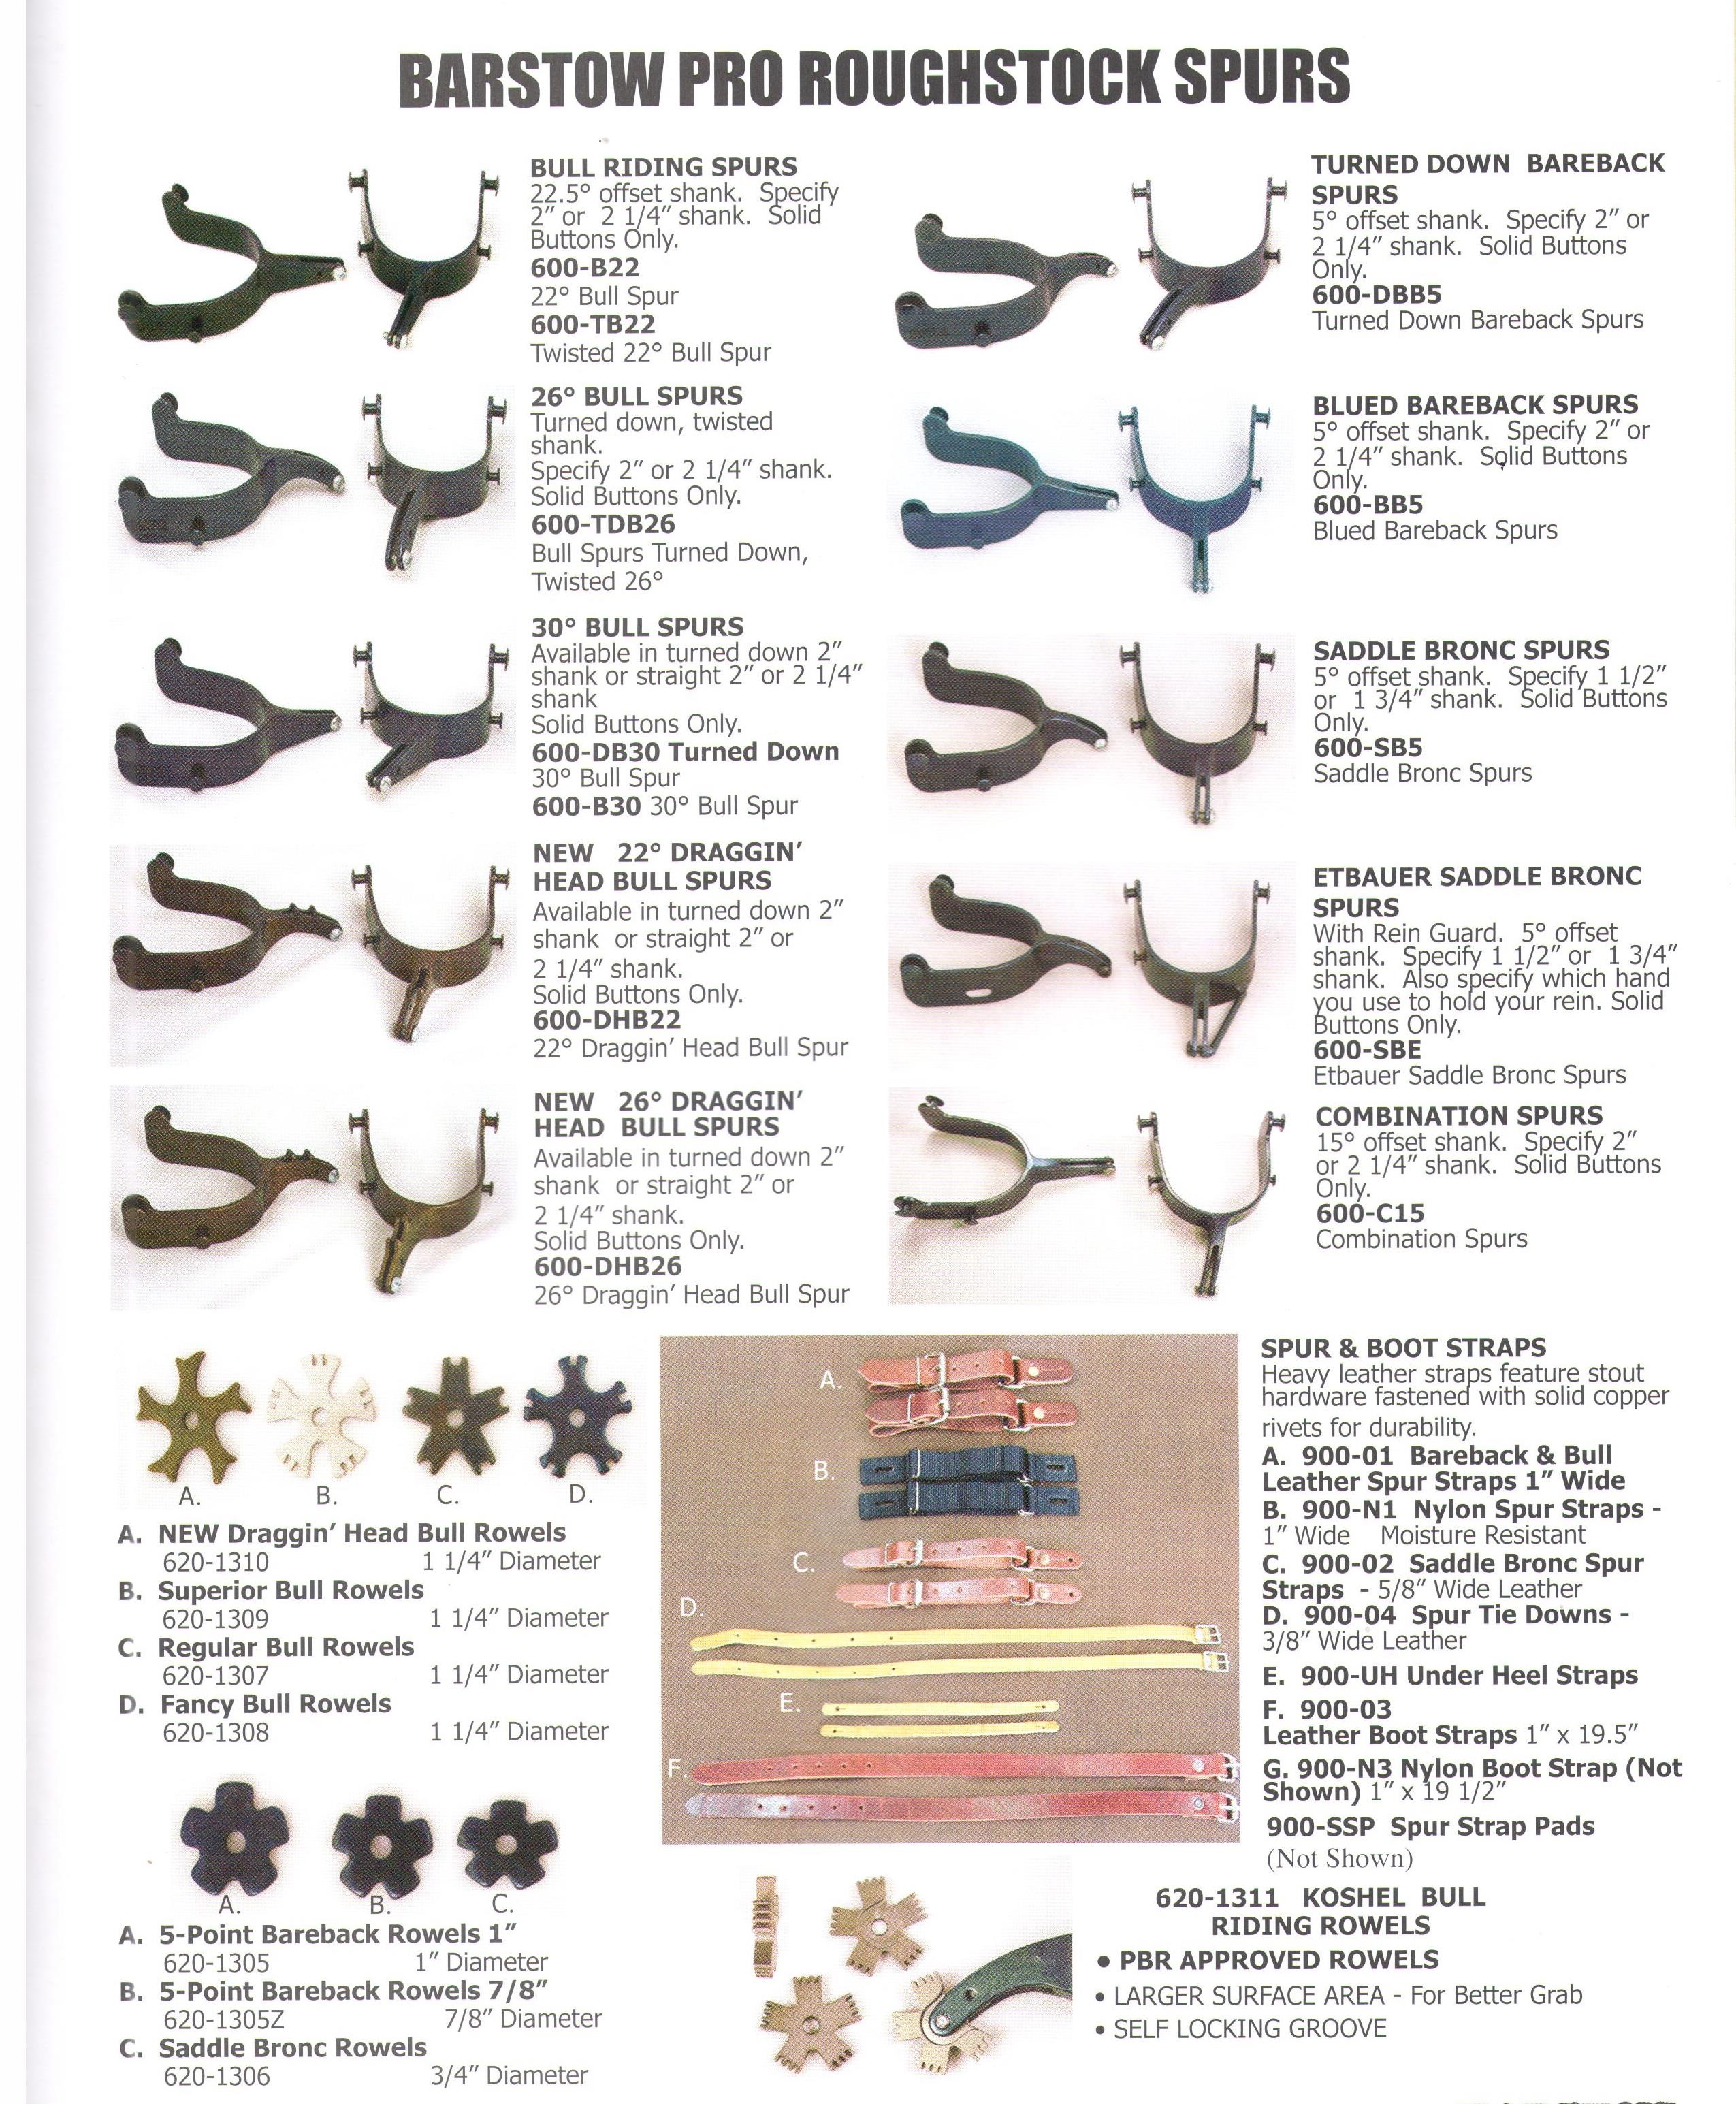 barstow-catalog-page-17-rowels-spurs.jpg